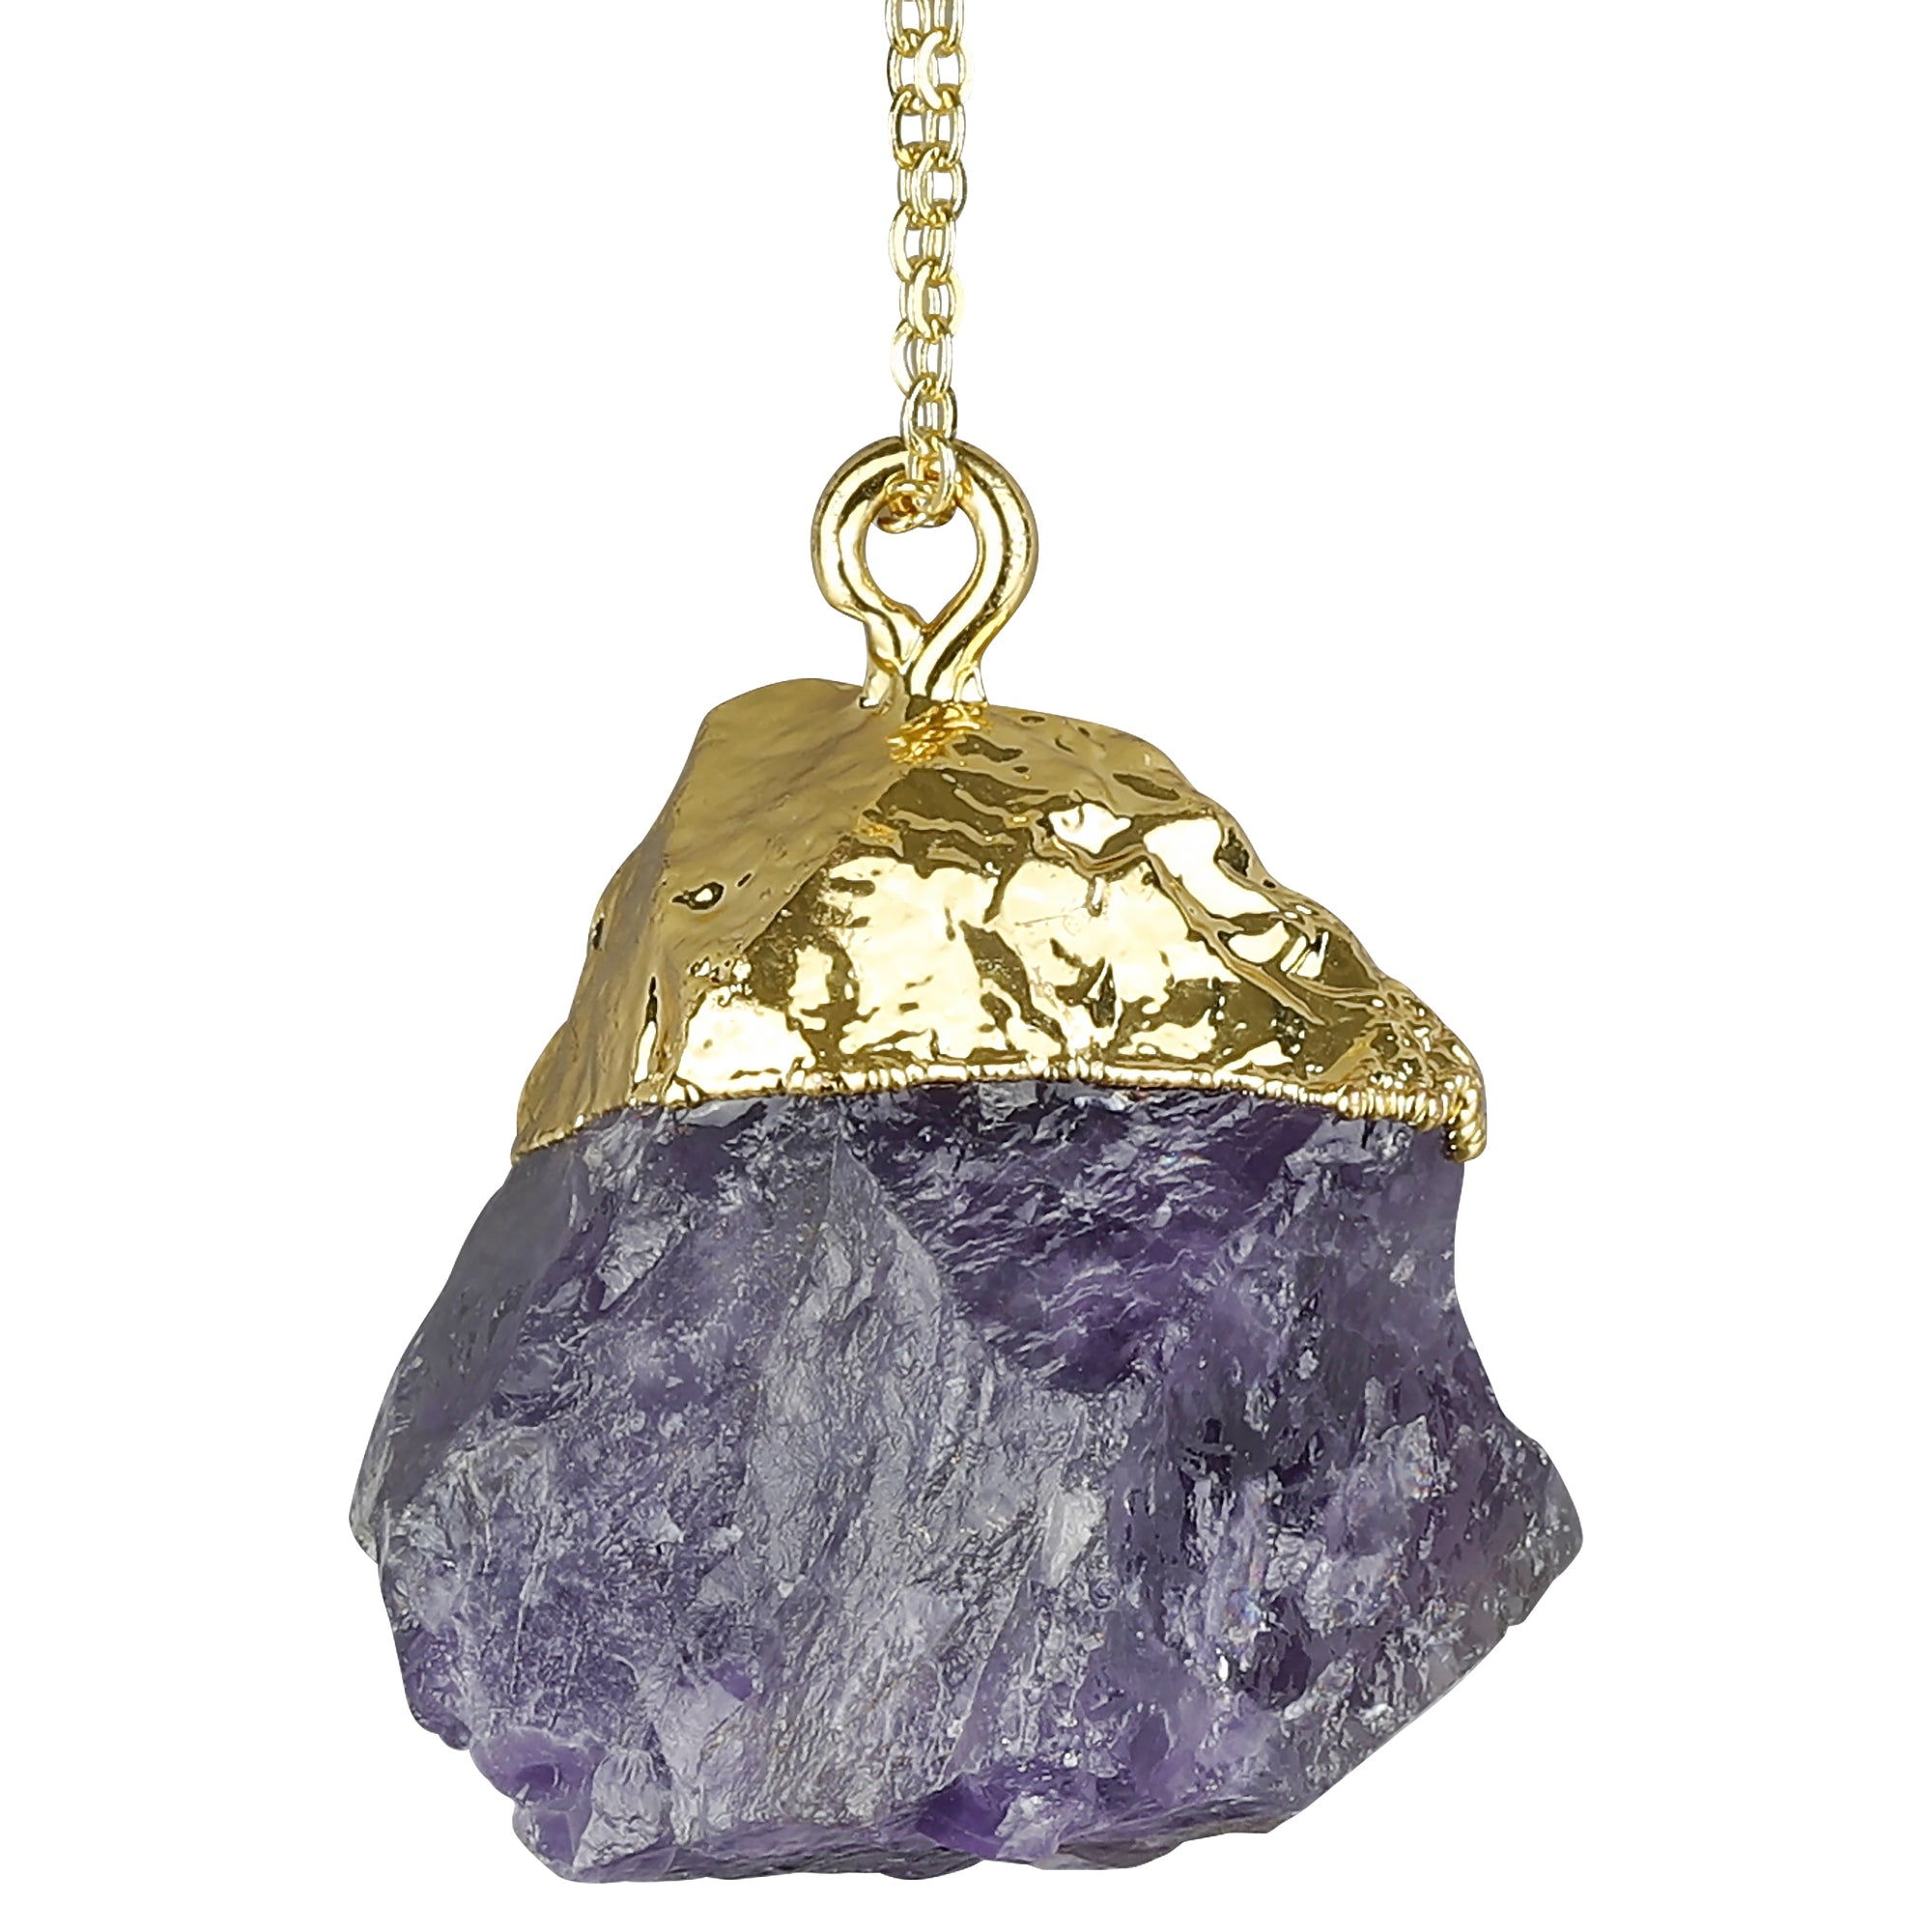 Amethyst Rough Gemstone Necklace + Meditation App - By Maude Hirst